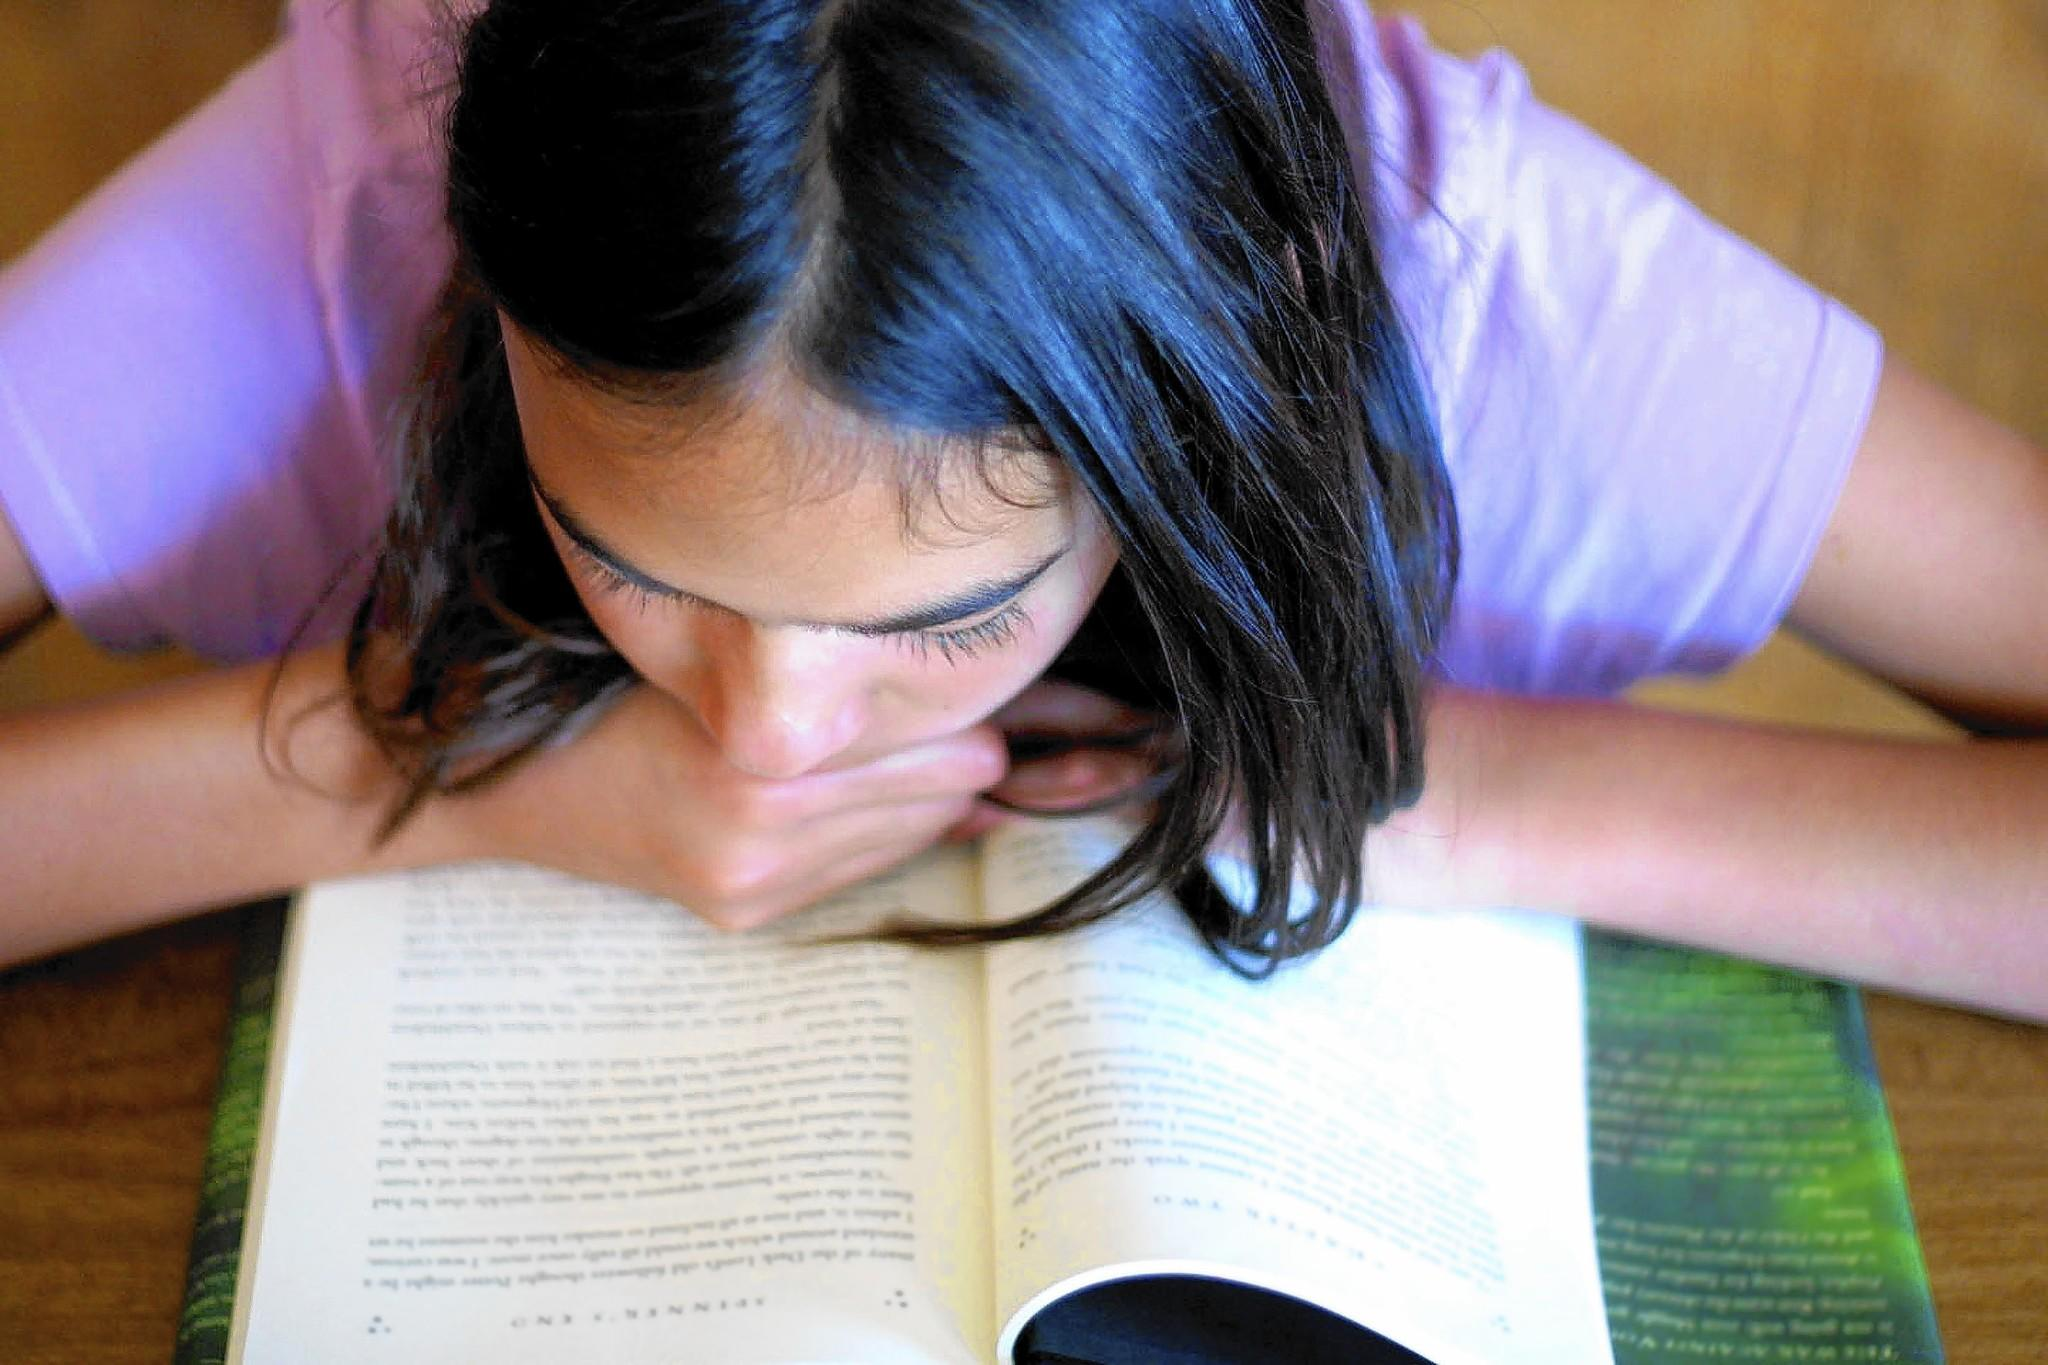 In response to Slate writer Ruth Graham's criticisms of adults reading young adult literature, the Biblioracle argues that you should never be embarrassed about what you read.